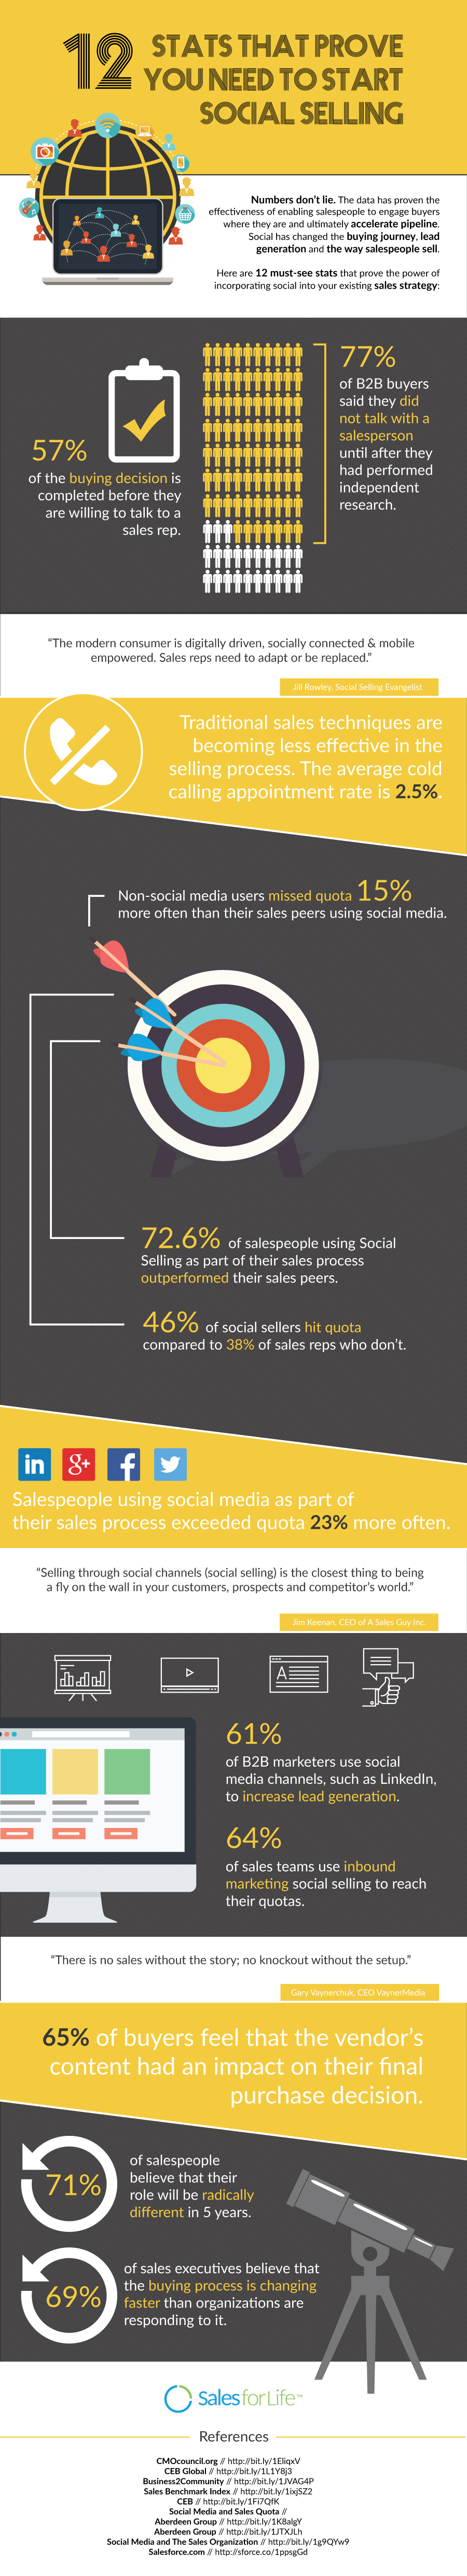 12 Stats That Prove You Need To Start Social Selling [Infographic]